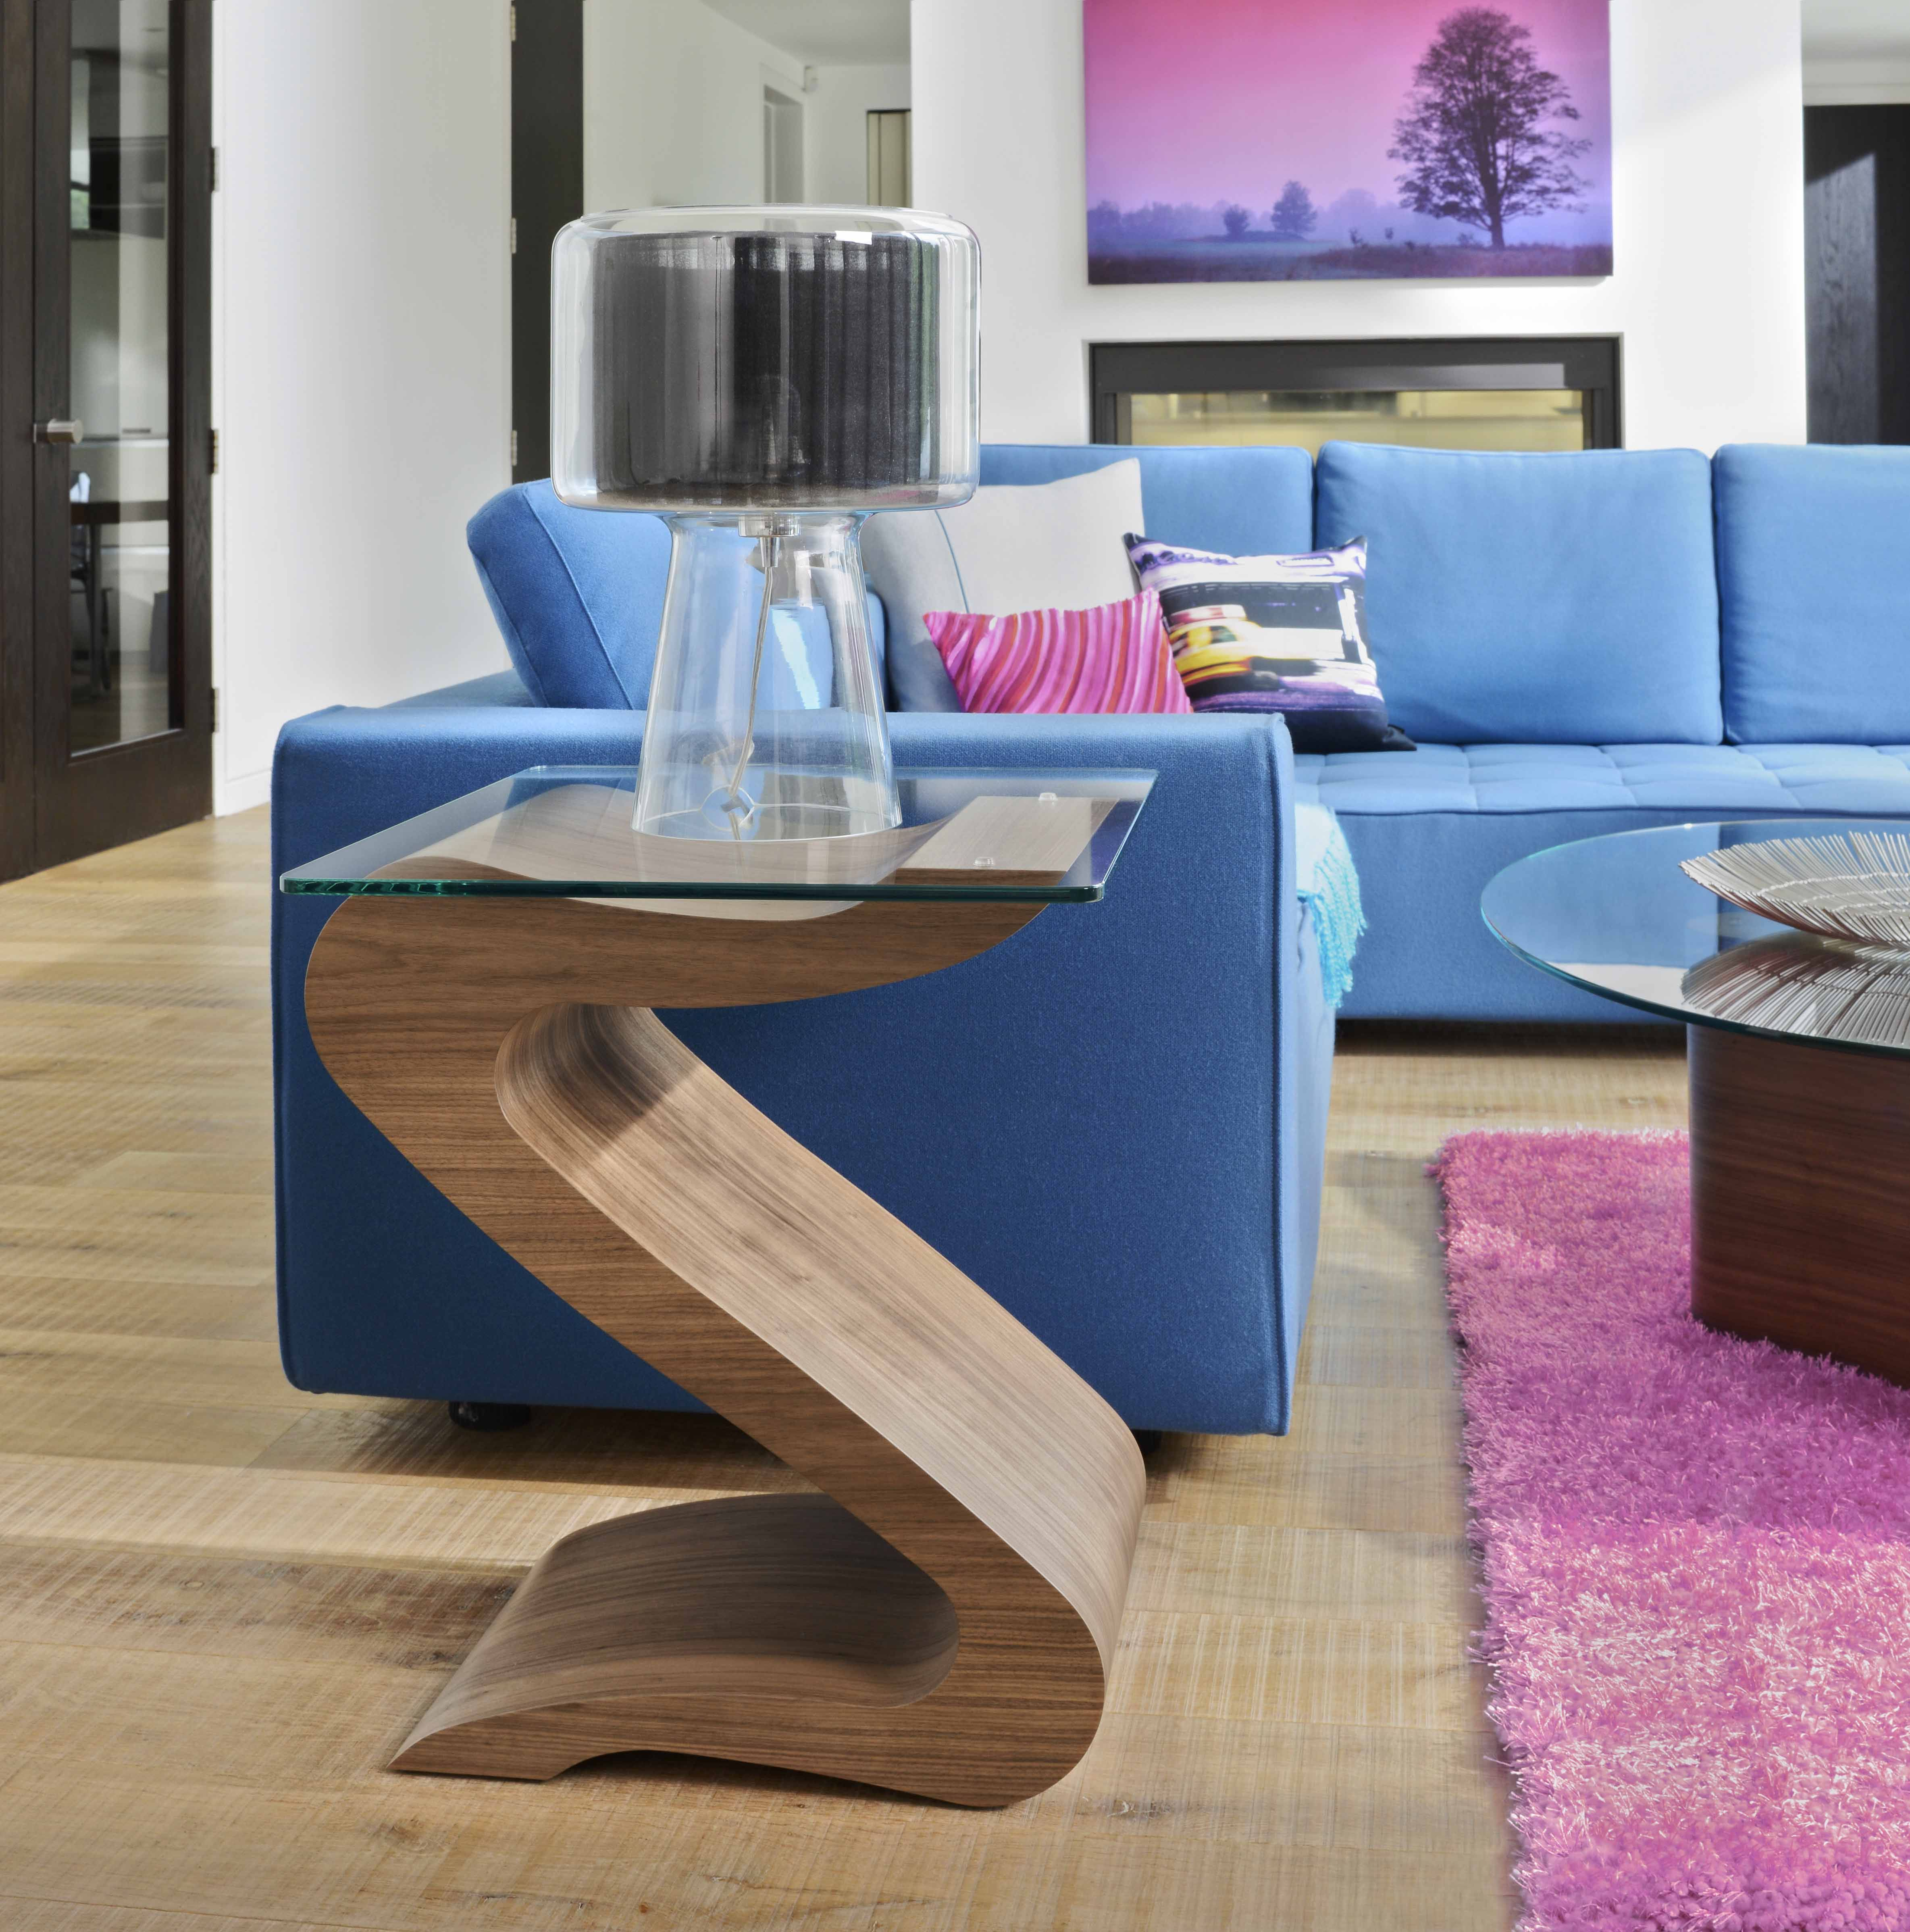 Add a sense of movement to your room with the serpentine flow of the Tom Schneider Lamp Table. #Chic #Style #Home #Curved #Interiors #Designer